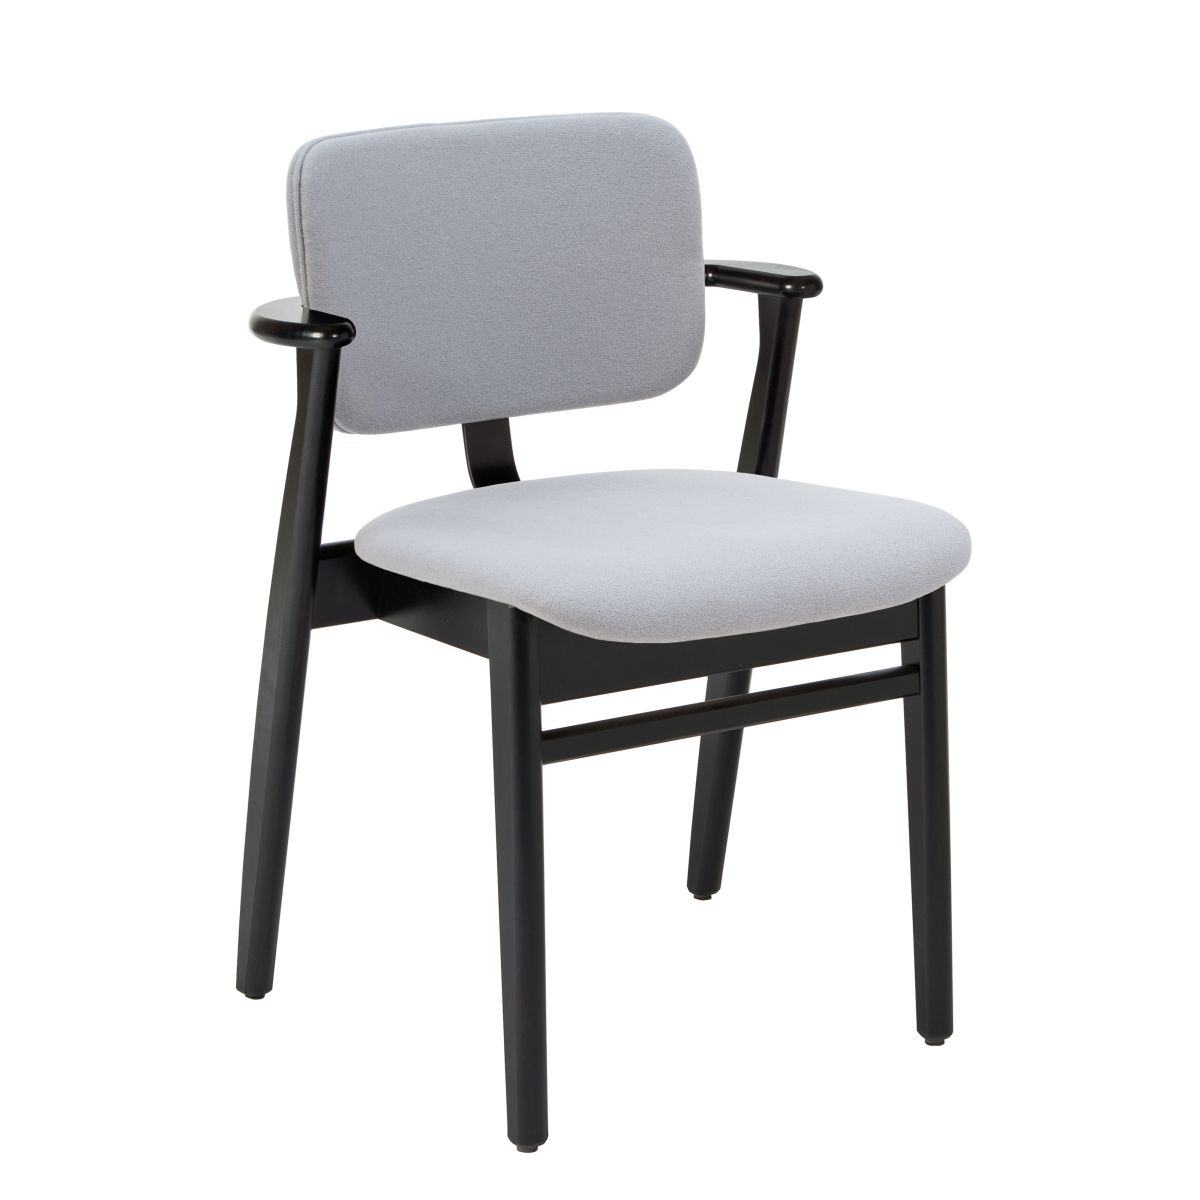 Domus-Chair-legs-black-stained-birch_seat-back-fabric-grey-2651003